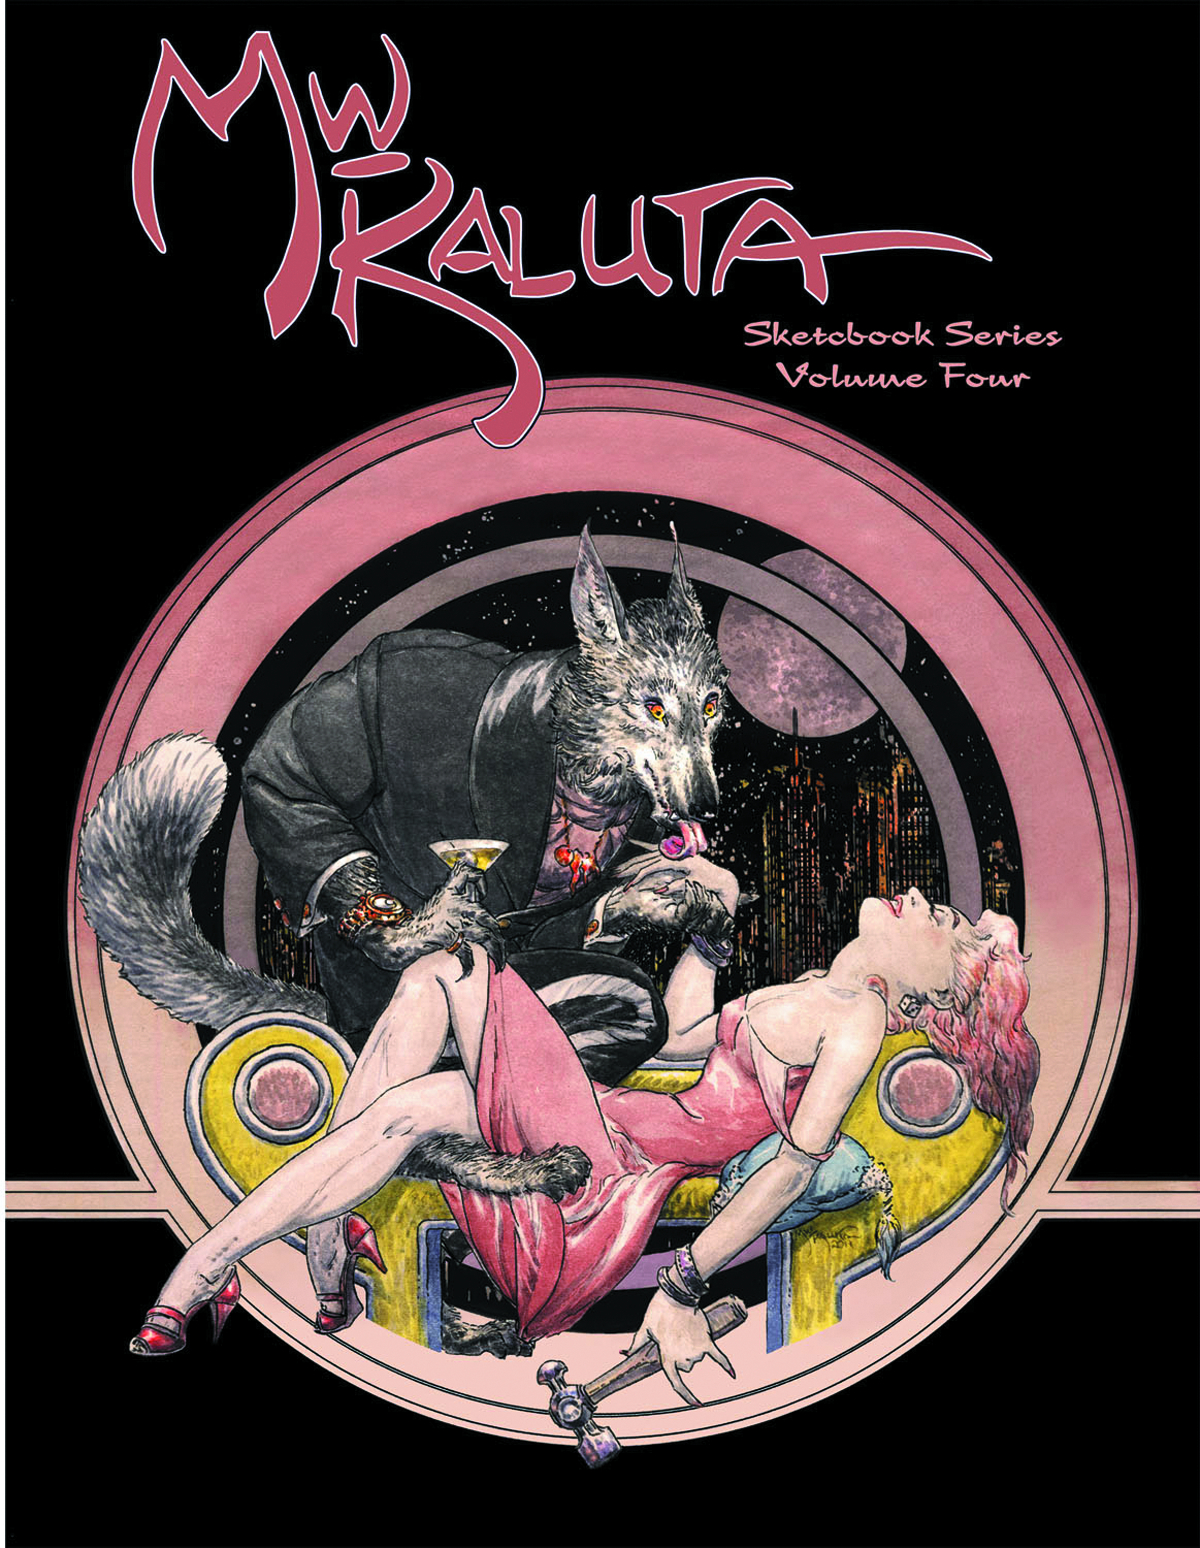 MICHAEL KALUTA SKETCHBOOK SERIES SC VOL 04